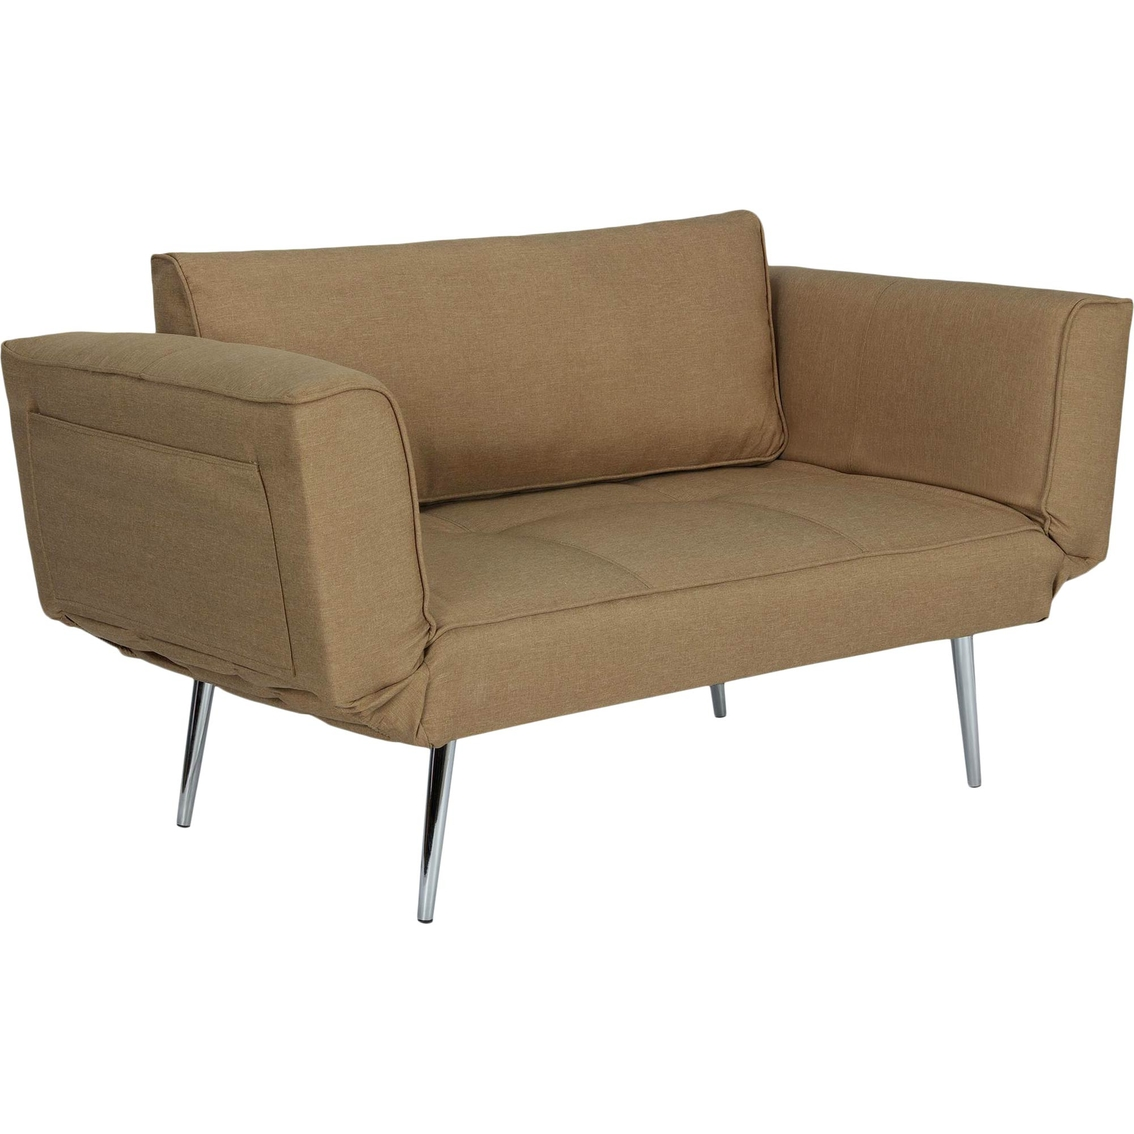 Euro Futon Sofa Bed Futon Cado Modern Furniture Luna Sofa